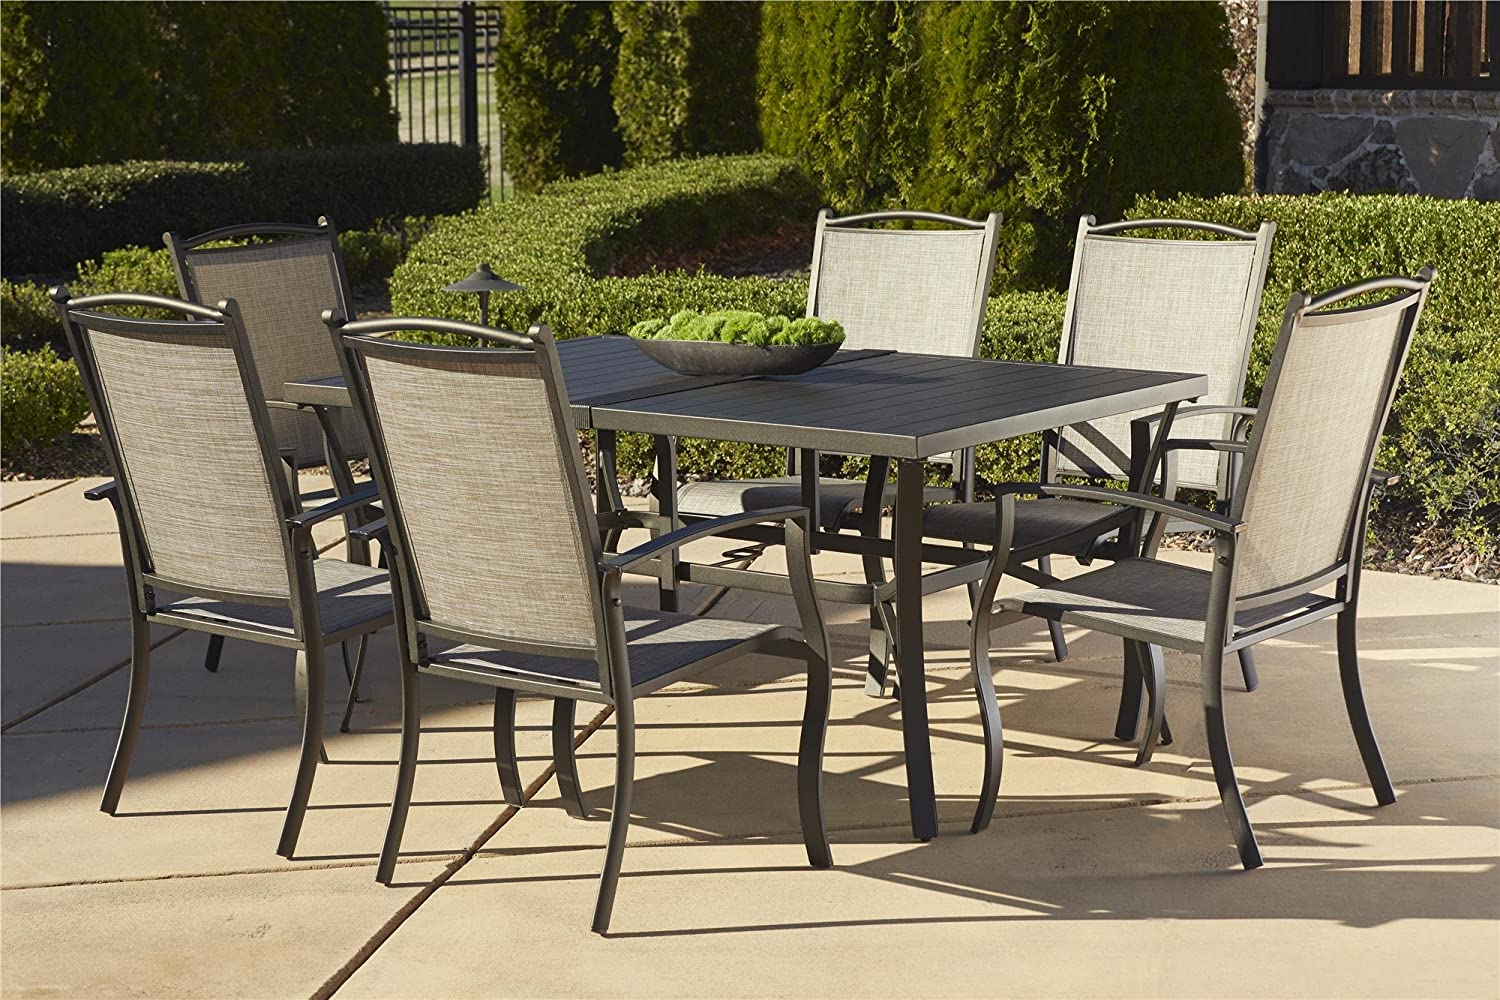 set composite deco piece sets at pl com shop dining furniture patio rst outdoors lowes brands